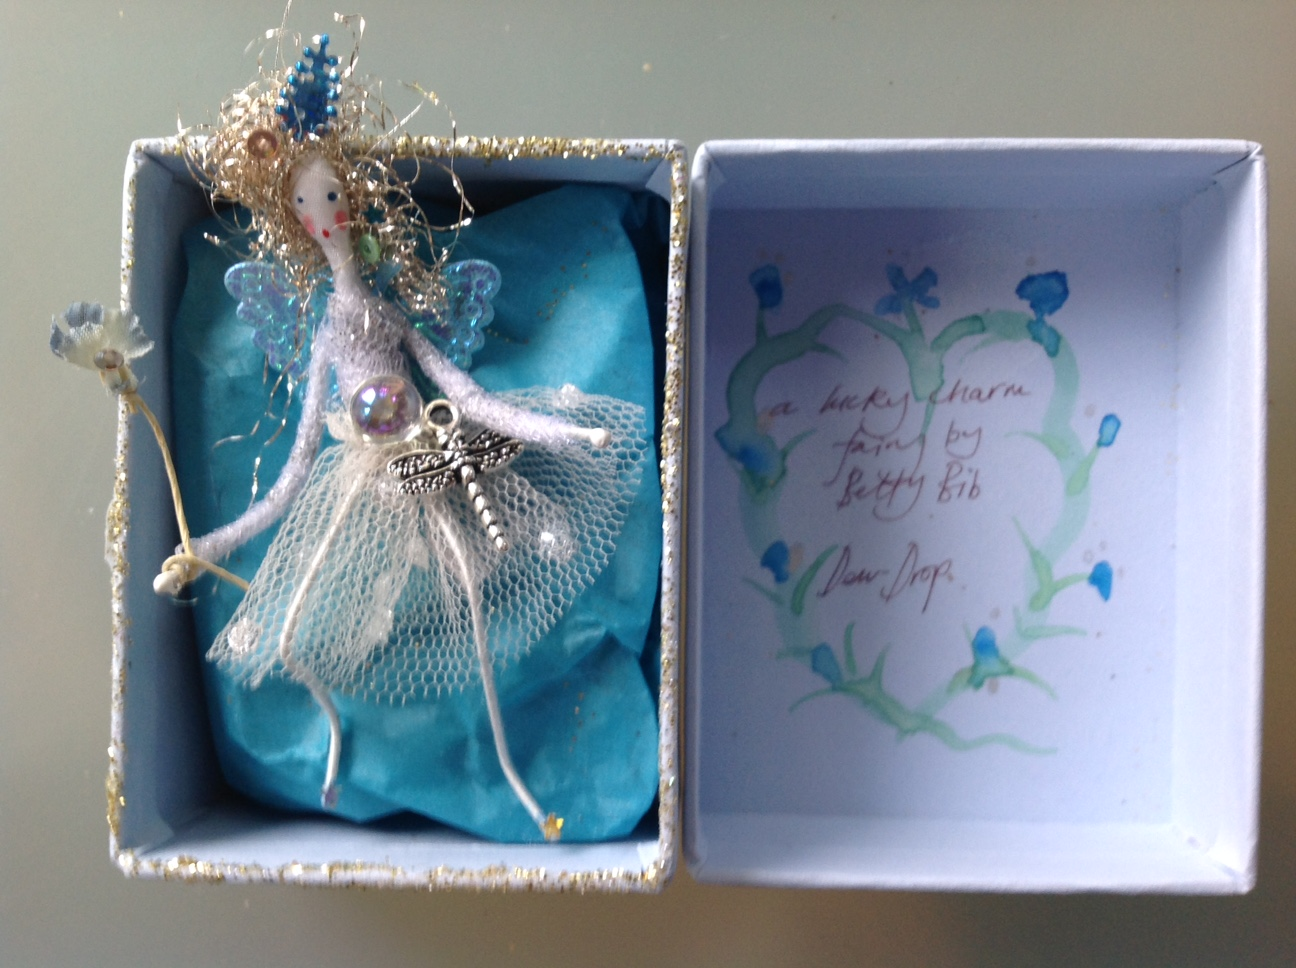 A LUCKY CHARM FAIRY A 9cm fairy in a box with a dragonfly charm at her waist. She is holding a paper flower wand. £20 plus £3.50 p&p